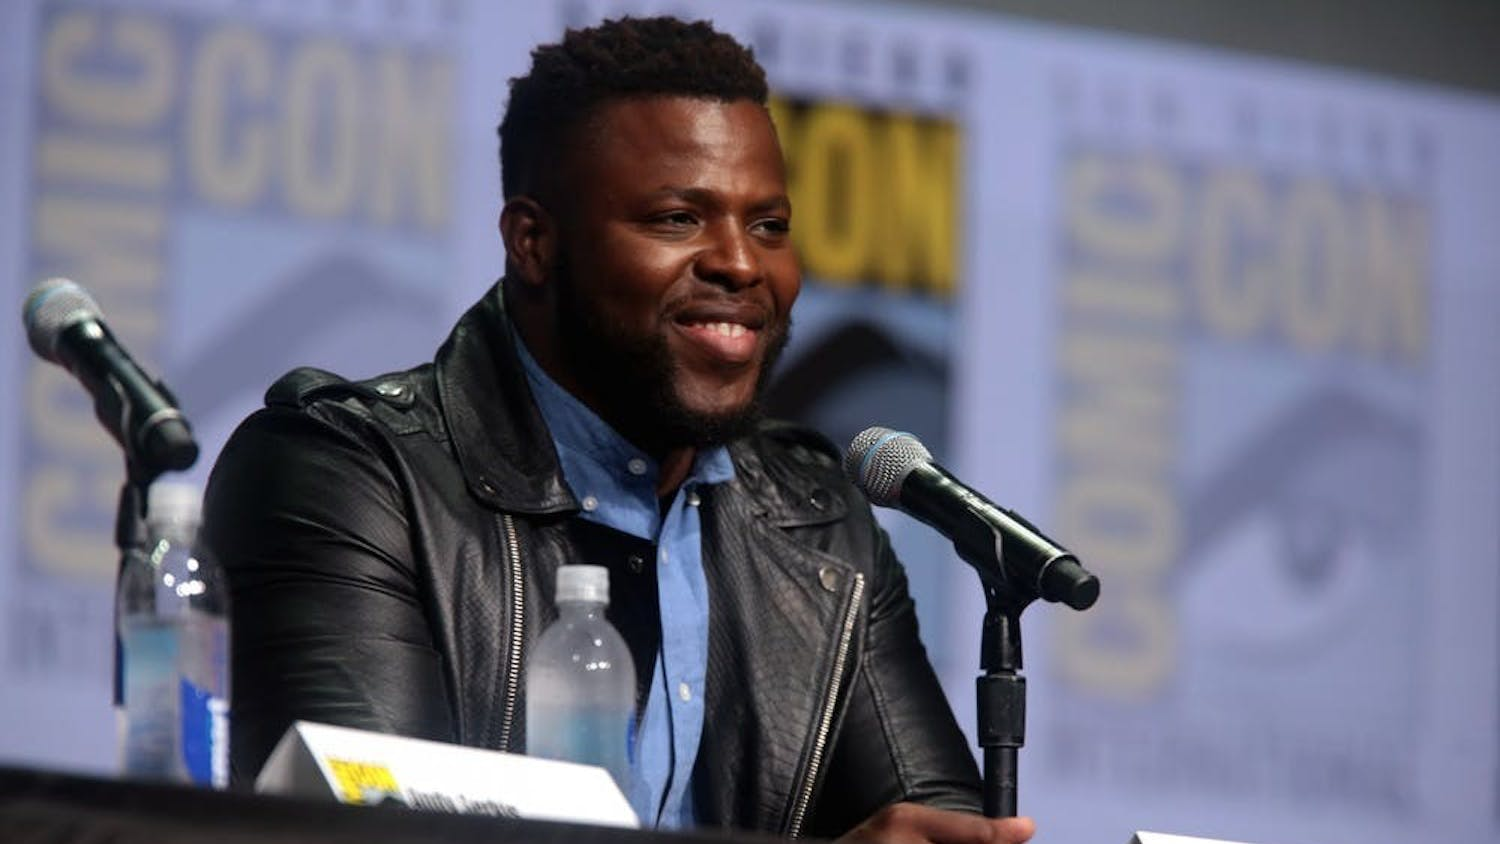 Winston Duke's Distinguished Speakers Series lecture has been rescheduled to Nov. 4.